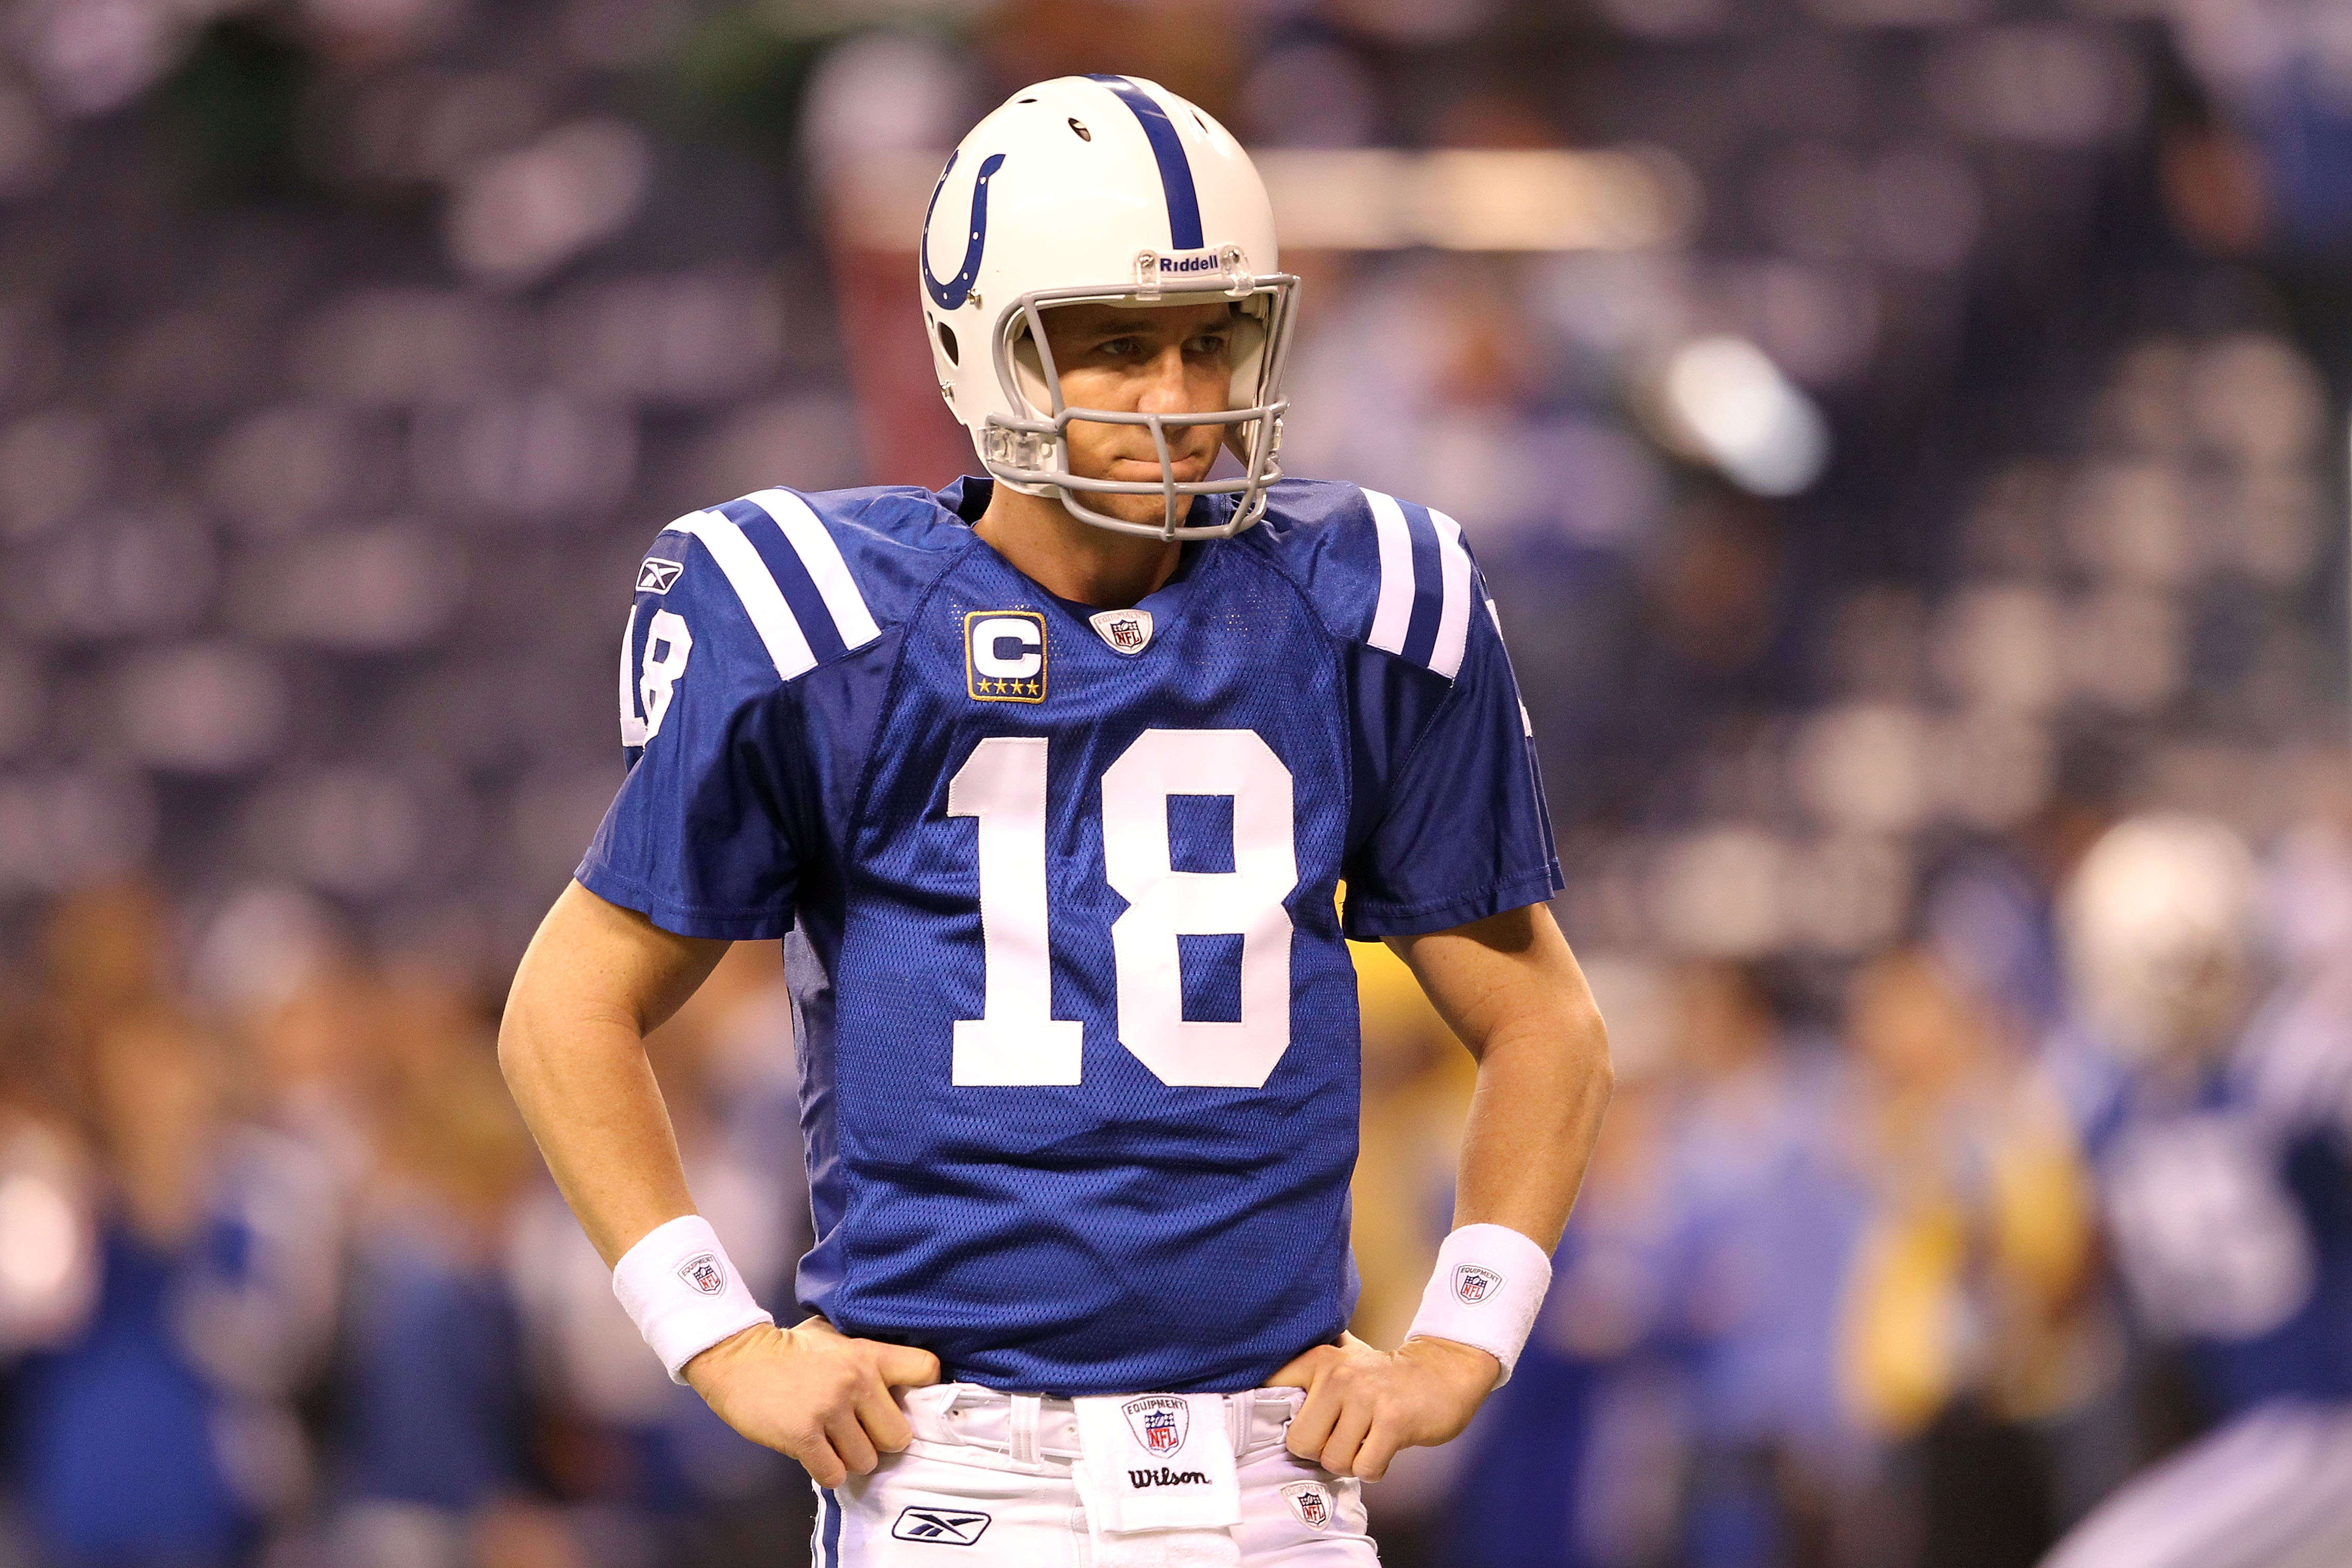 INDIANAPOLIS, IN - JANUARY 08:  Quarterback Peyton Manning #18 of the Indianapolis Colts looks on during warm ups against the New York Jets during their 2011 AFC wild card playoff game at Lucas Oil Stadium on January 8, 2011 in Indianapolis, Indiana.  (Ph